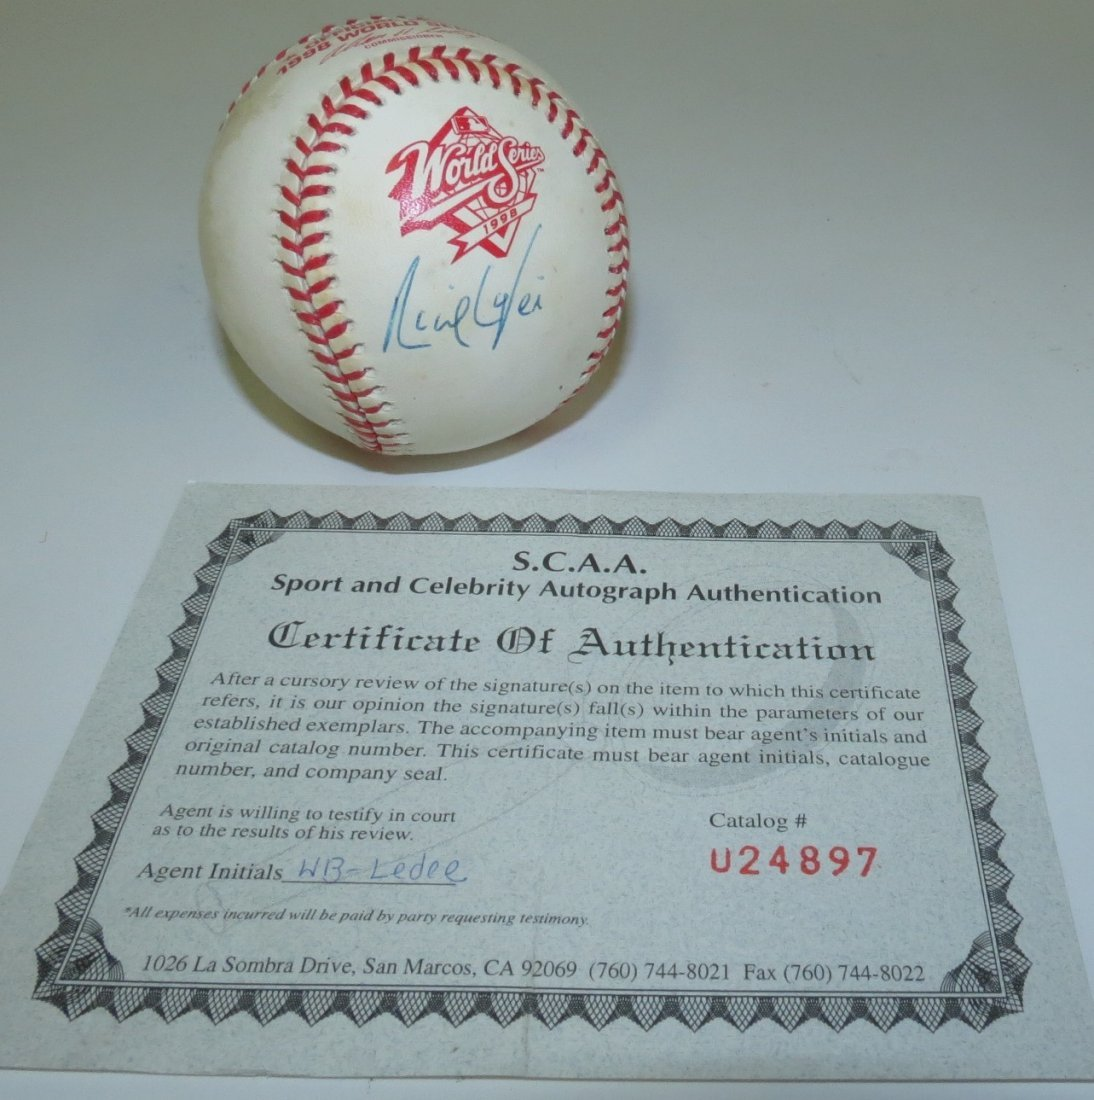 Ricky Ledee signed baseball with Certificate of